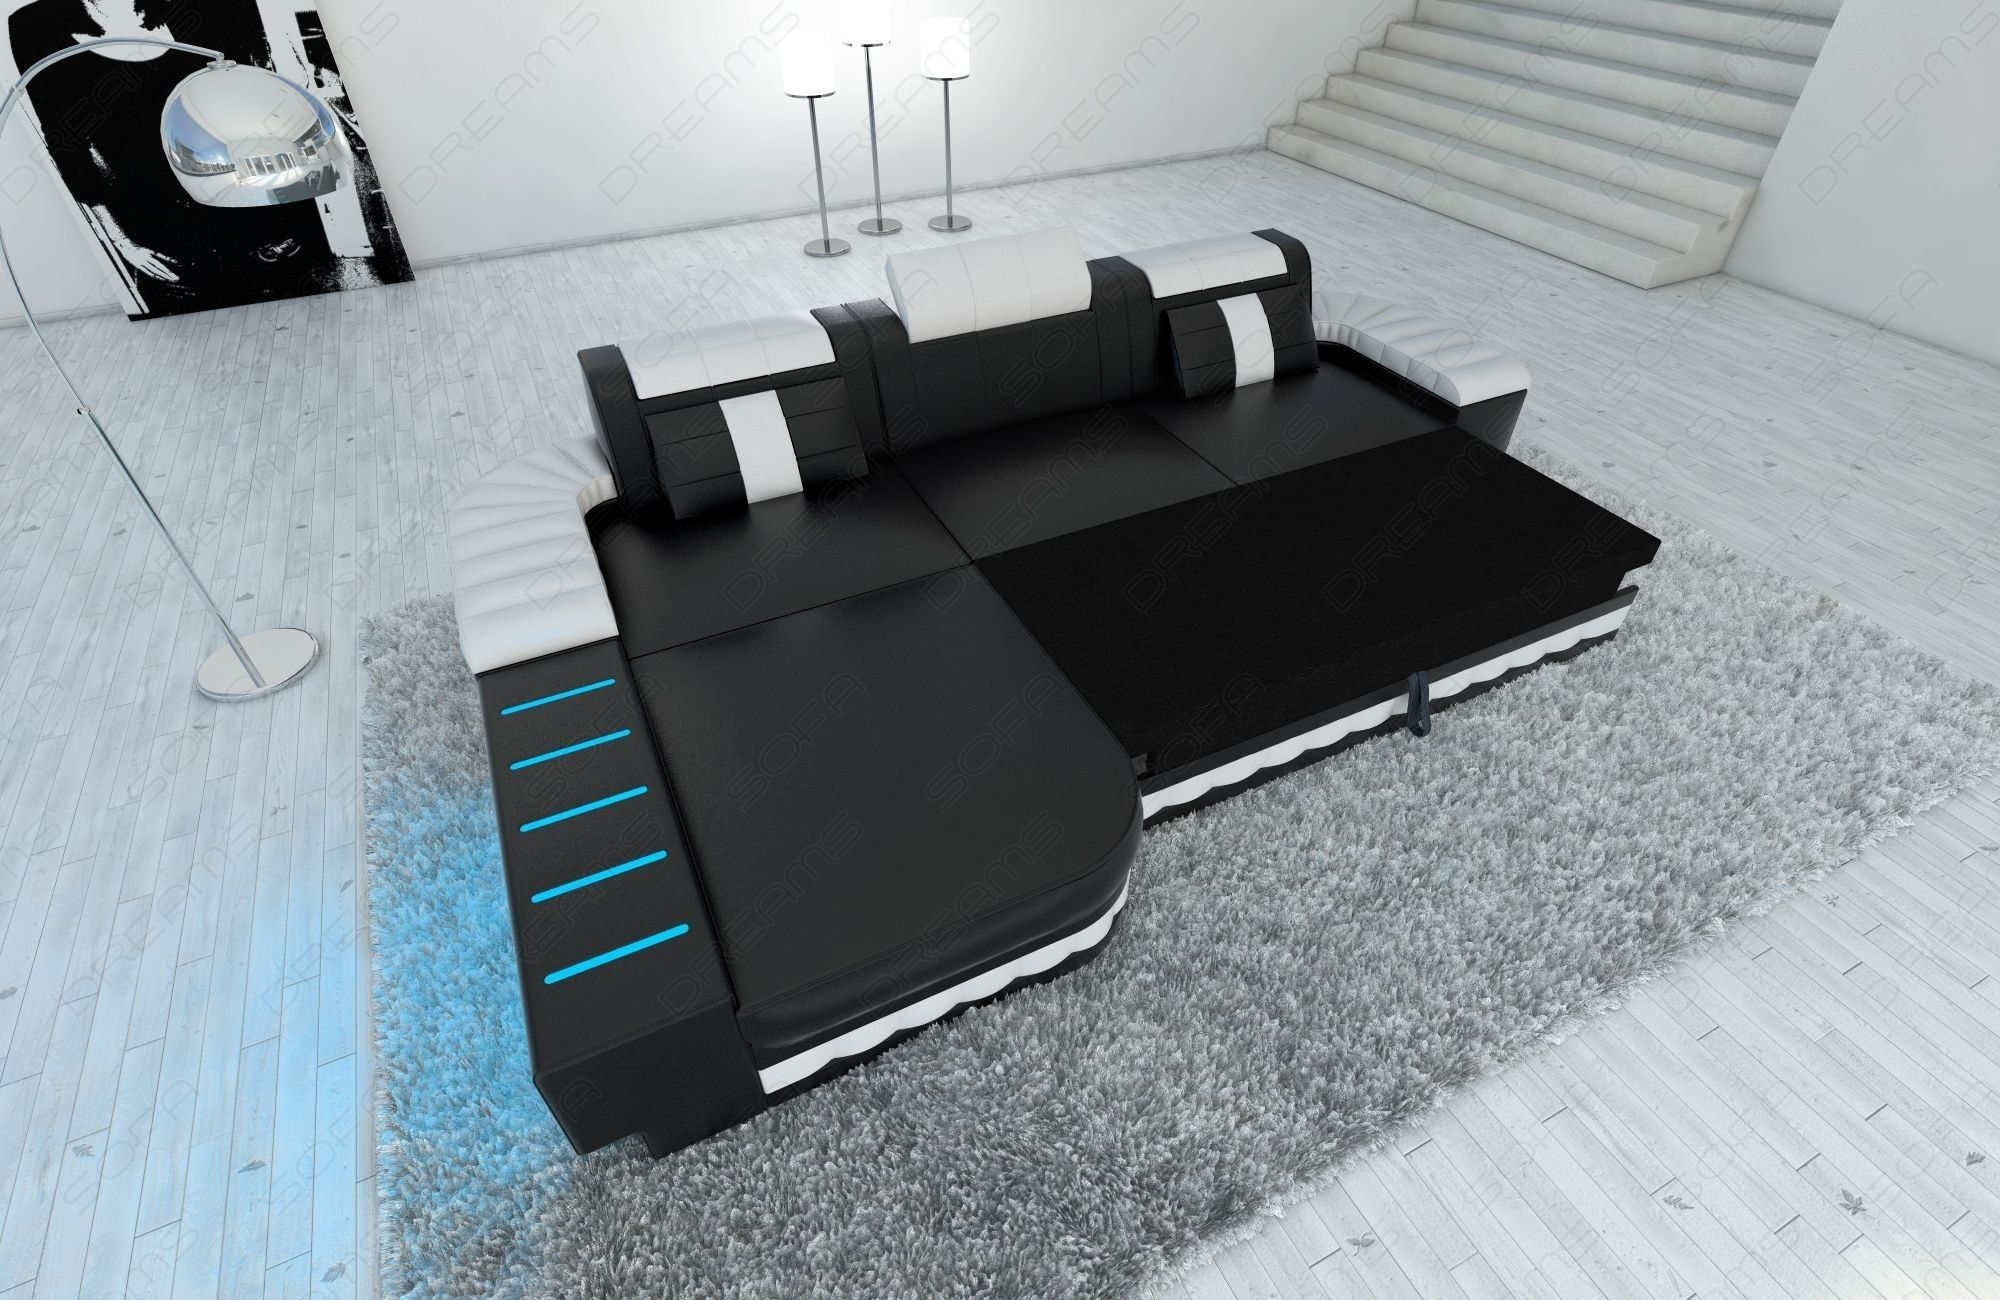 2019 Black Fabric Sofa Beds What You Need To Know Black Fabric Sofa